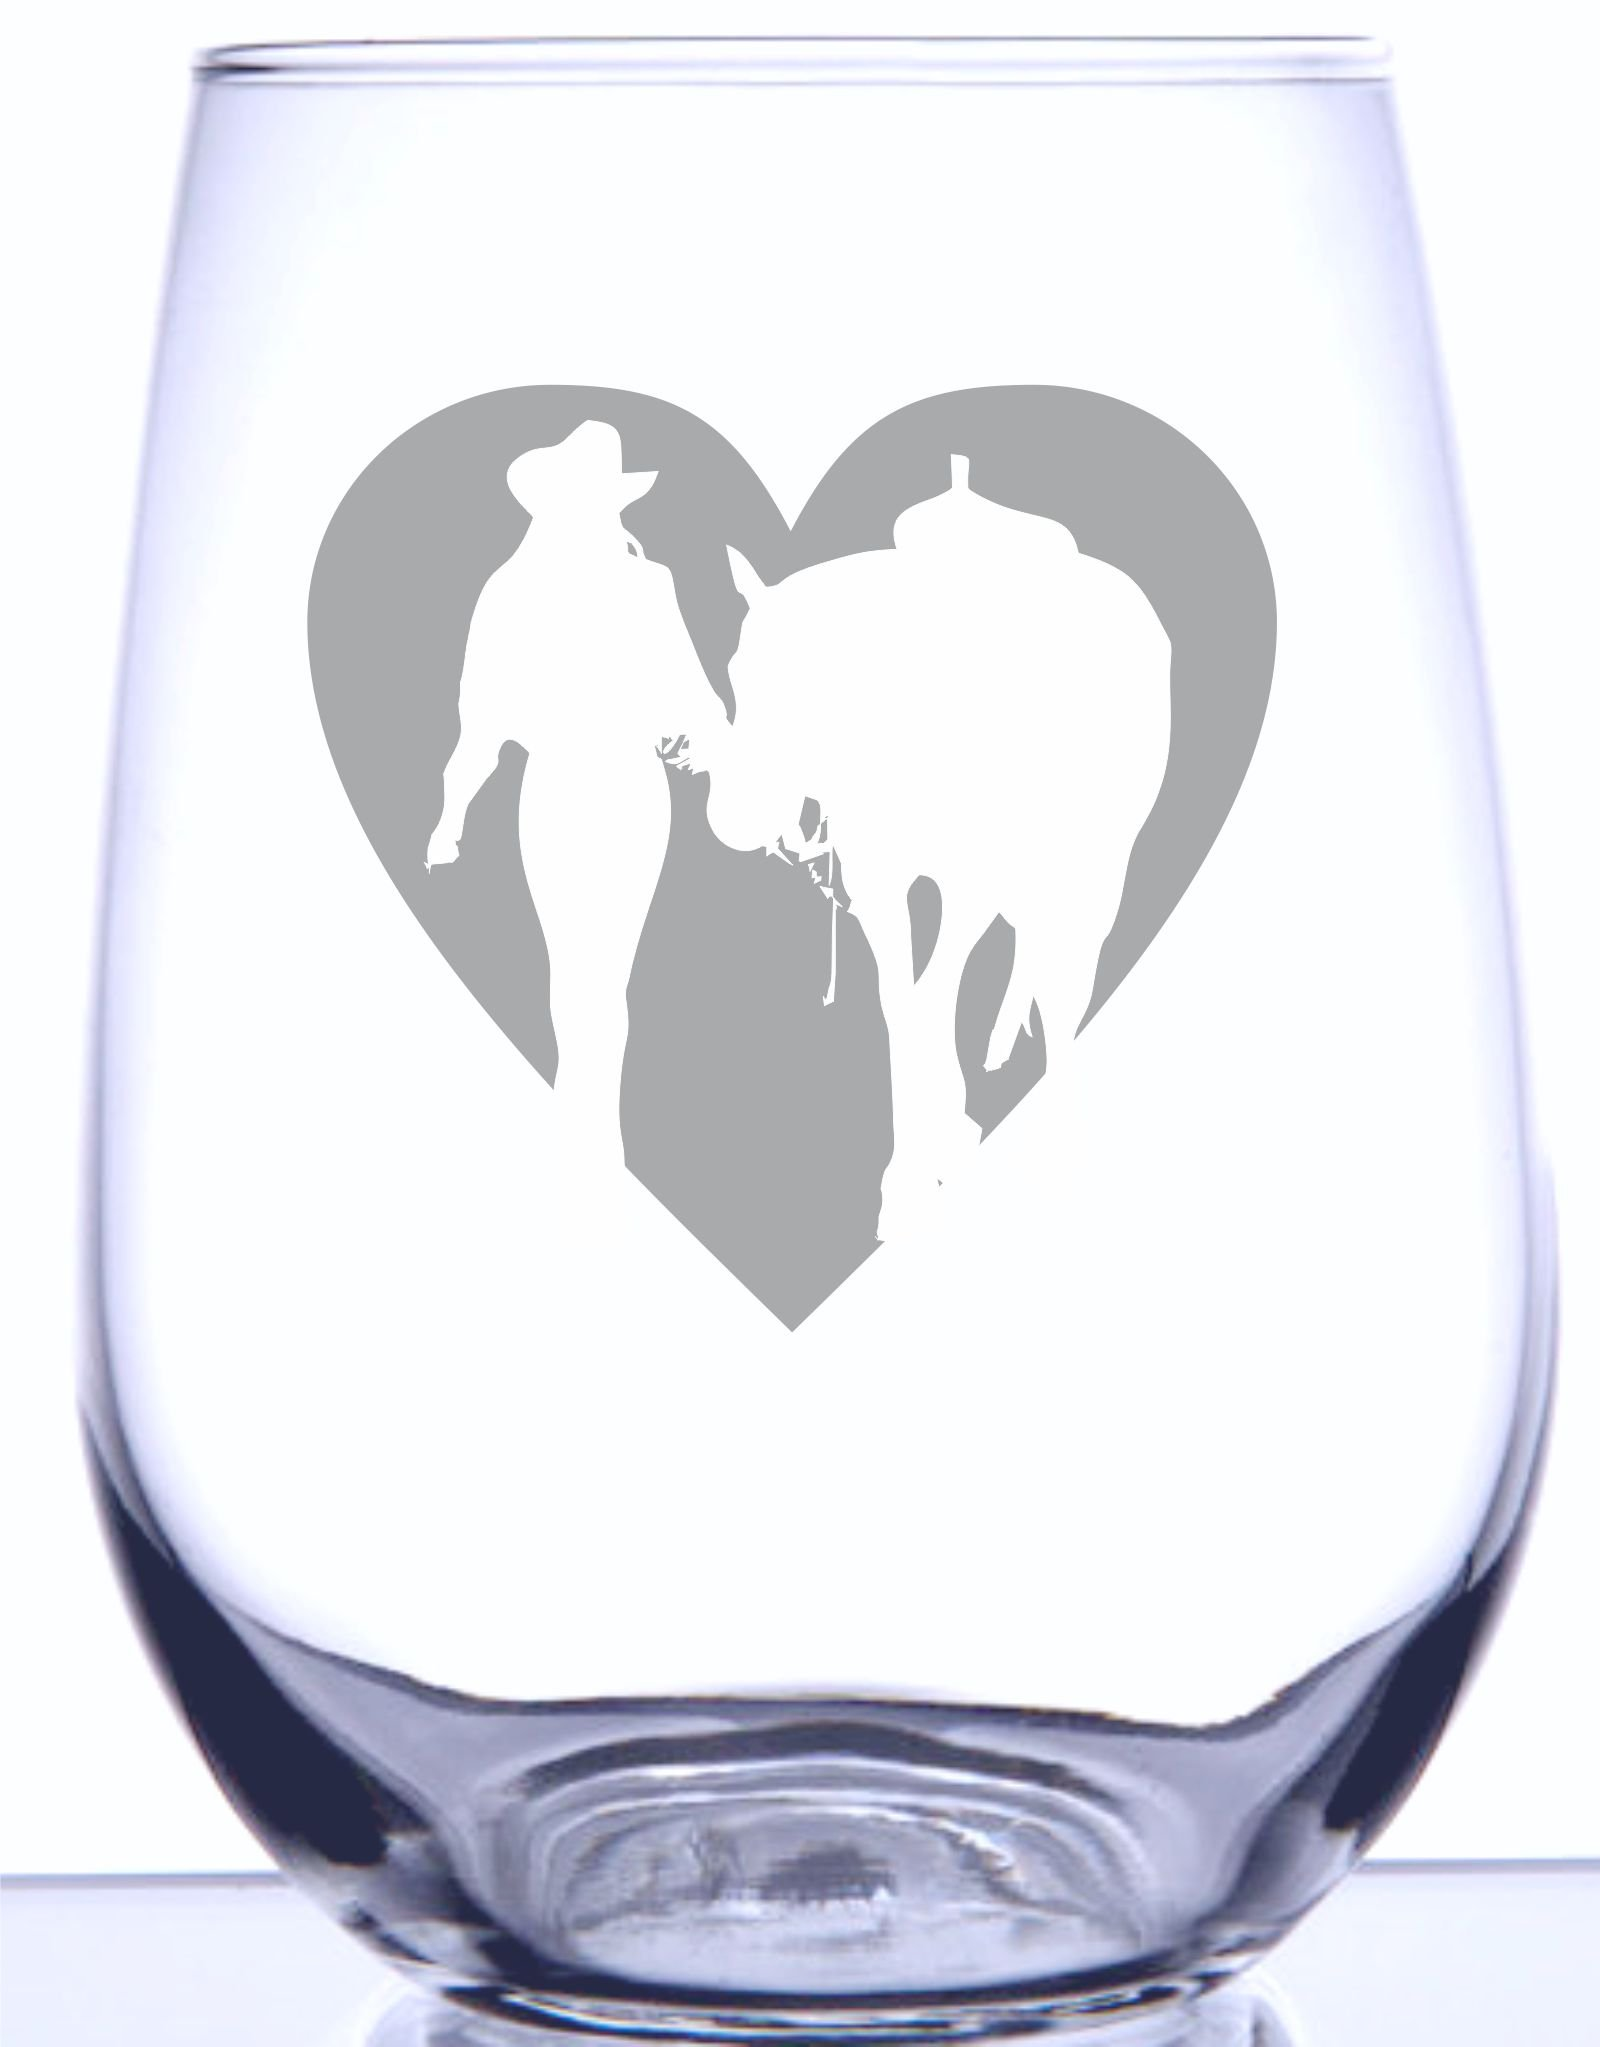 IE Laserware Girl & Horse Heart Silhouette Laser Etched Engraved Wine Glass - 17 Ounce Stemless Wine Glass